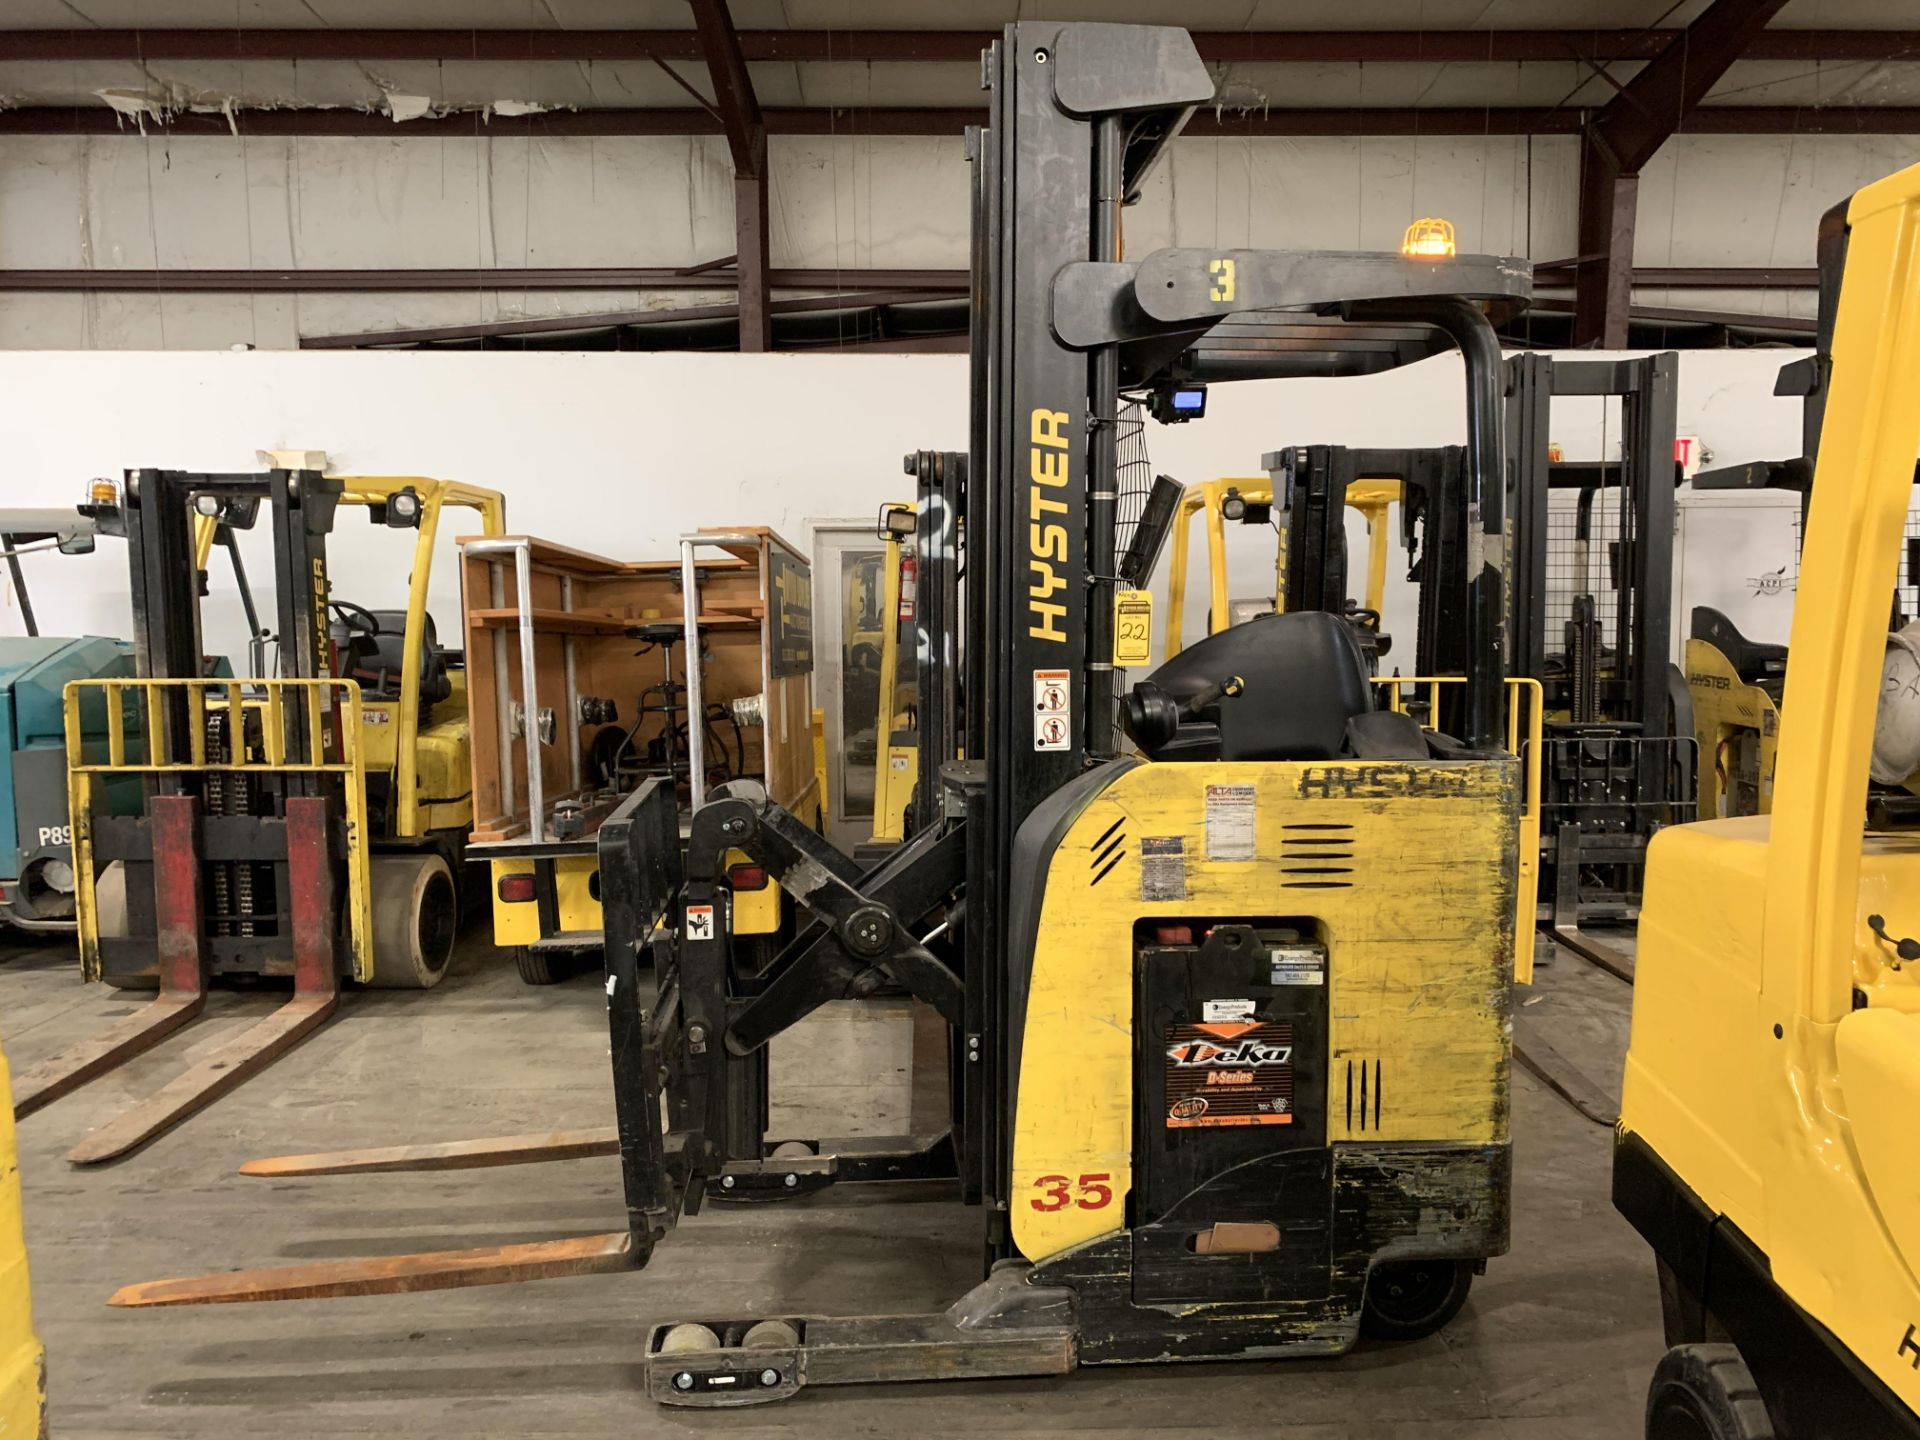 """*LOCATED IN OHIO* 2015 HYSTER 3,500-LB. CAPACITY REACH TRUCK, MOD NR35, 111"""" LOWER/251'' LIFT HEIGHT - Image 6 of 7"""